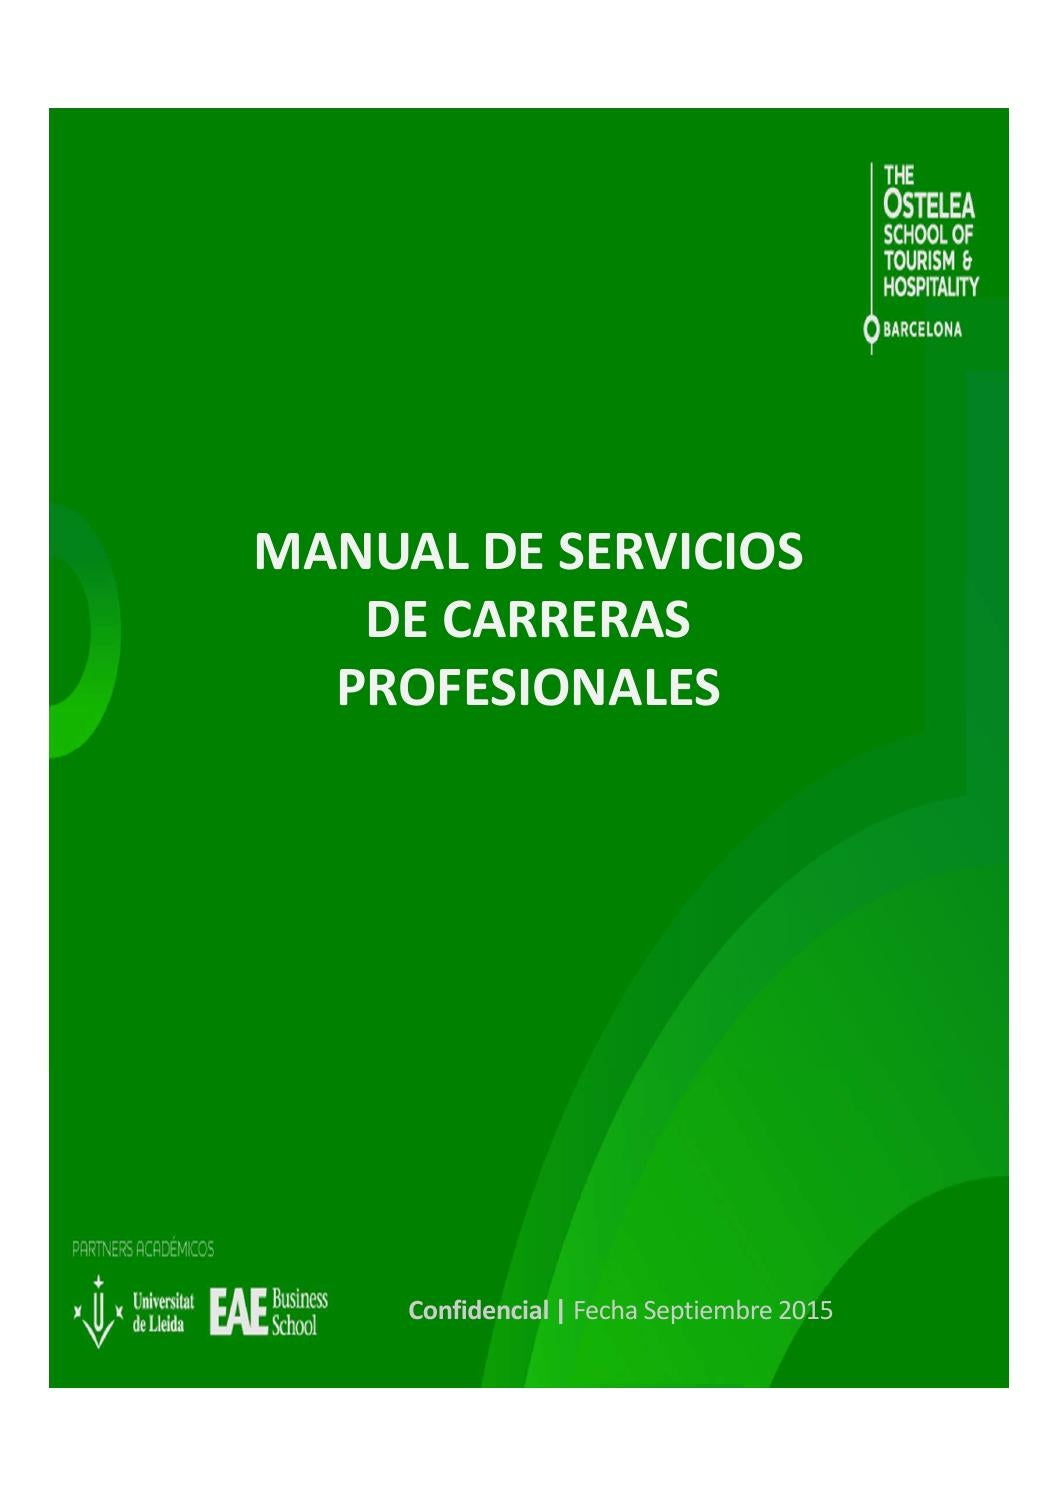 Manual carreras profesionales Ostelea by EAE BUSINESS SCHOOL - issuu